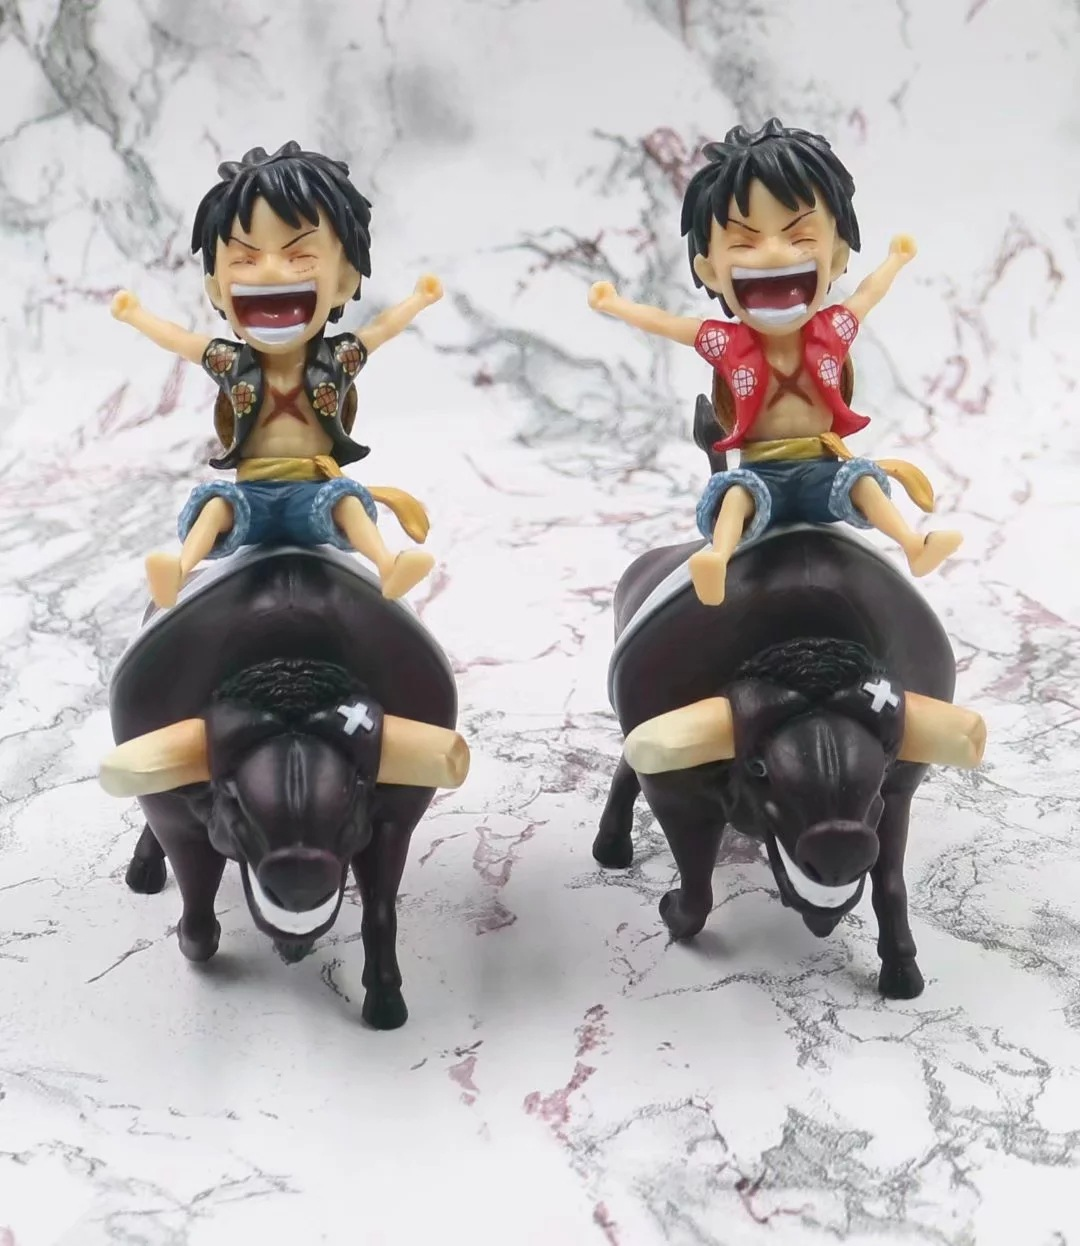 Anime One Piece Luffy Riding A Cow Ver Action Figure 1/8 Scale Painted Figure Monkey D Luffy Pvc Figure Toys Superior In Quality